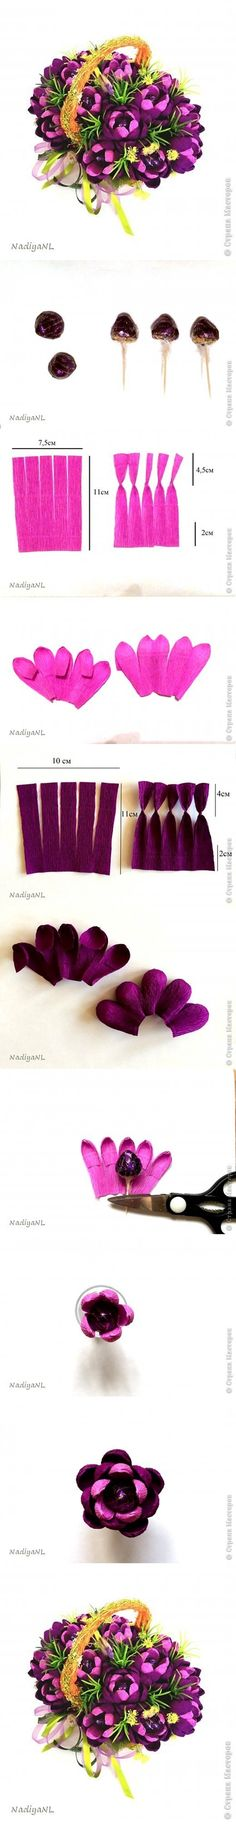 DIY Beautiful Chocolate Flower Bouquet